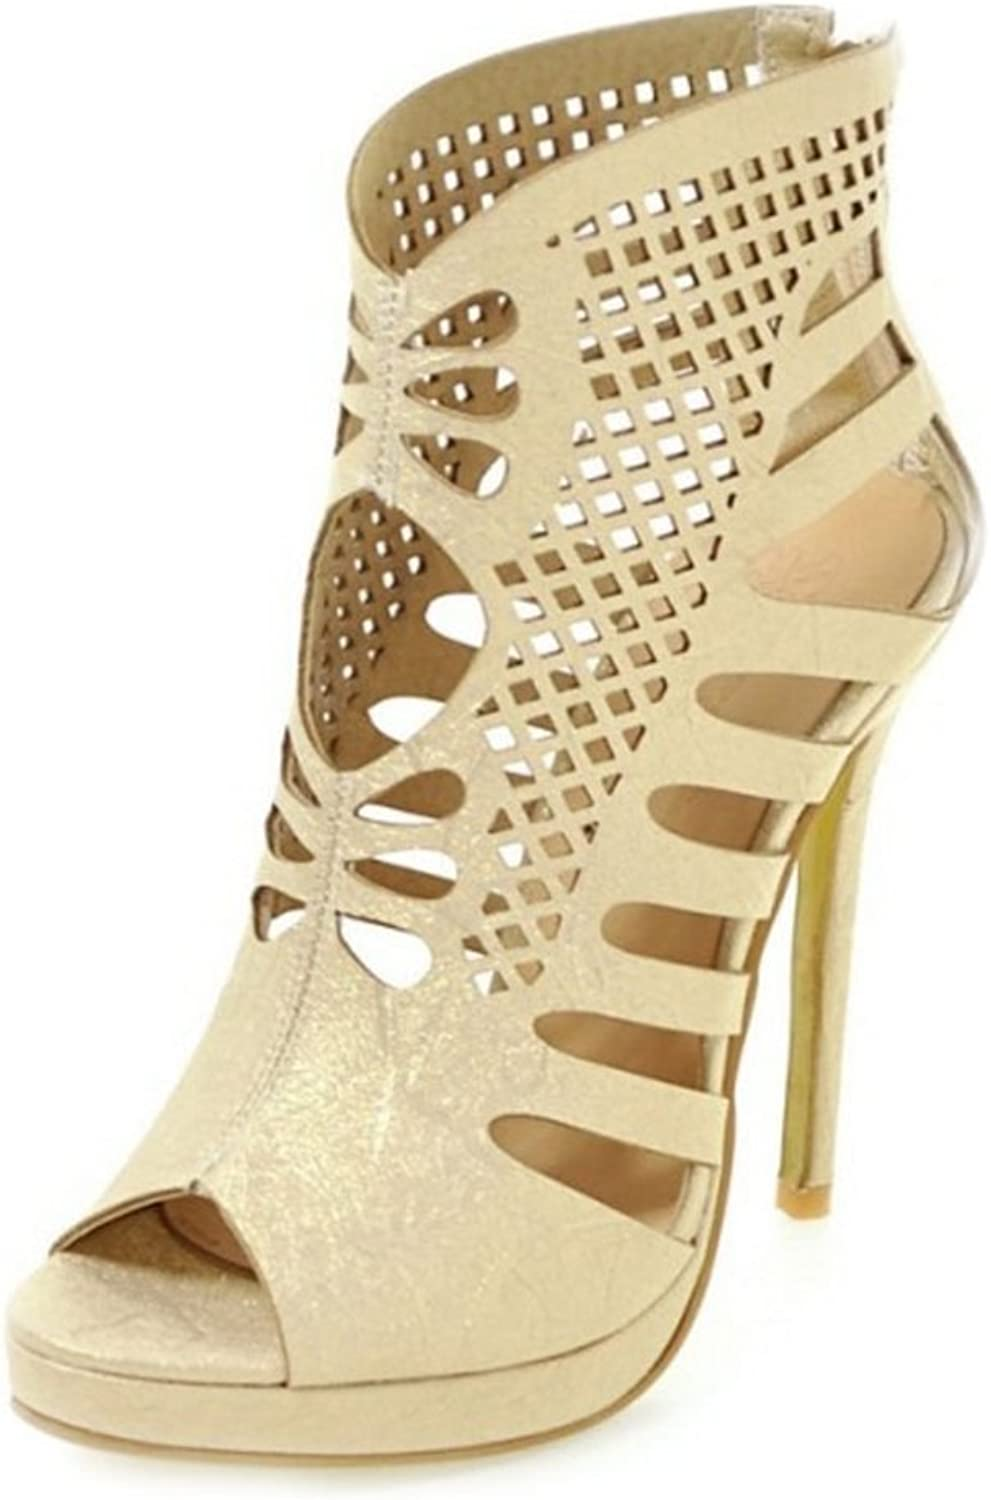 CUTEHEELS Women Gladiator Sandals with High Thin Heel and Hollowed-Out Roman Sandals with Mini Large